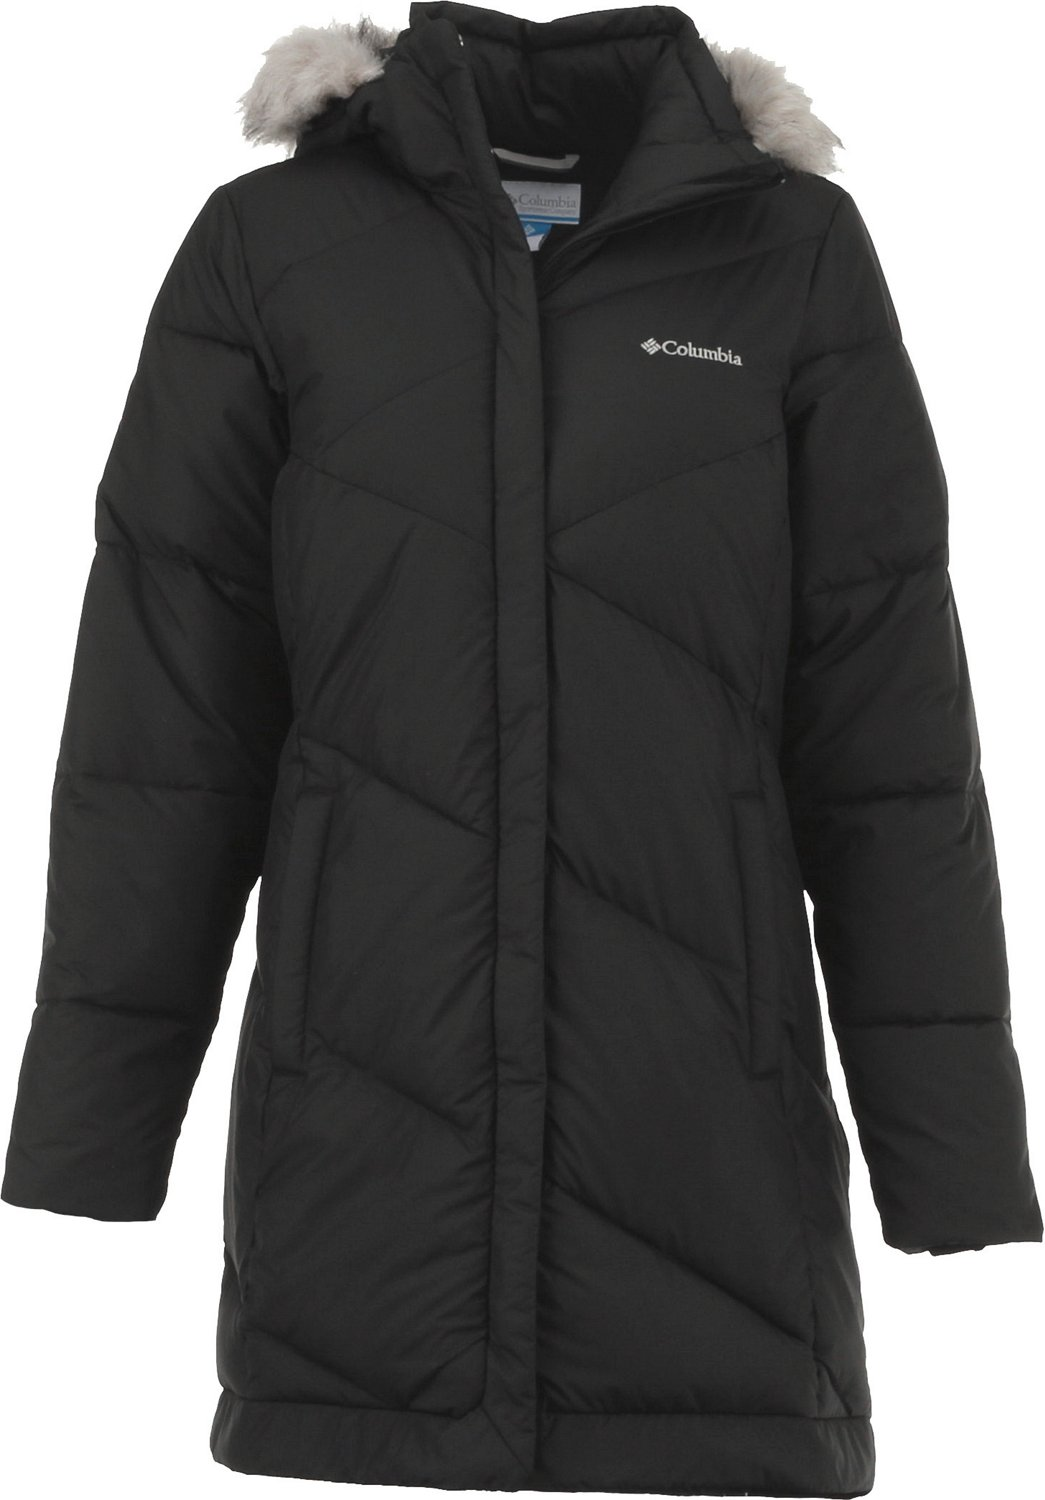 Jackets For Women Academy